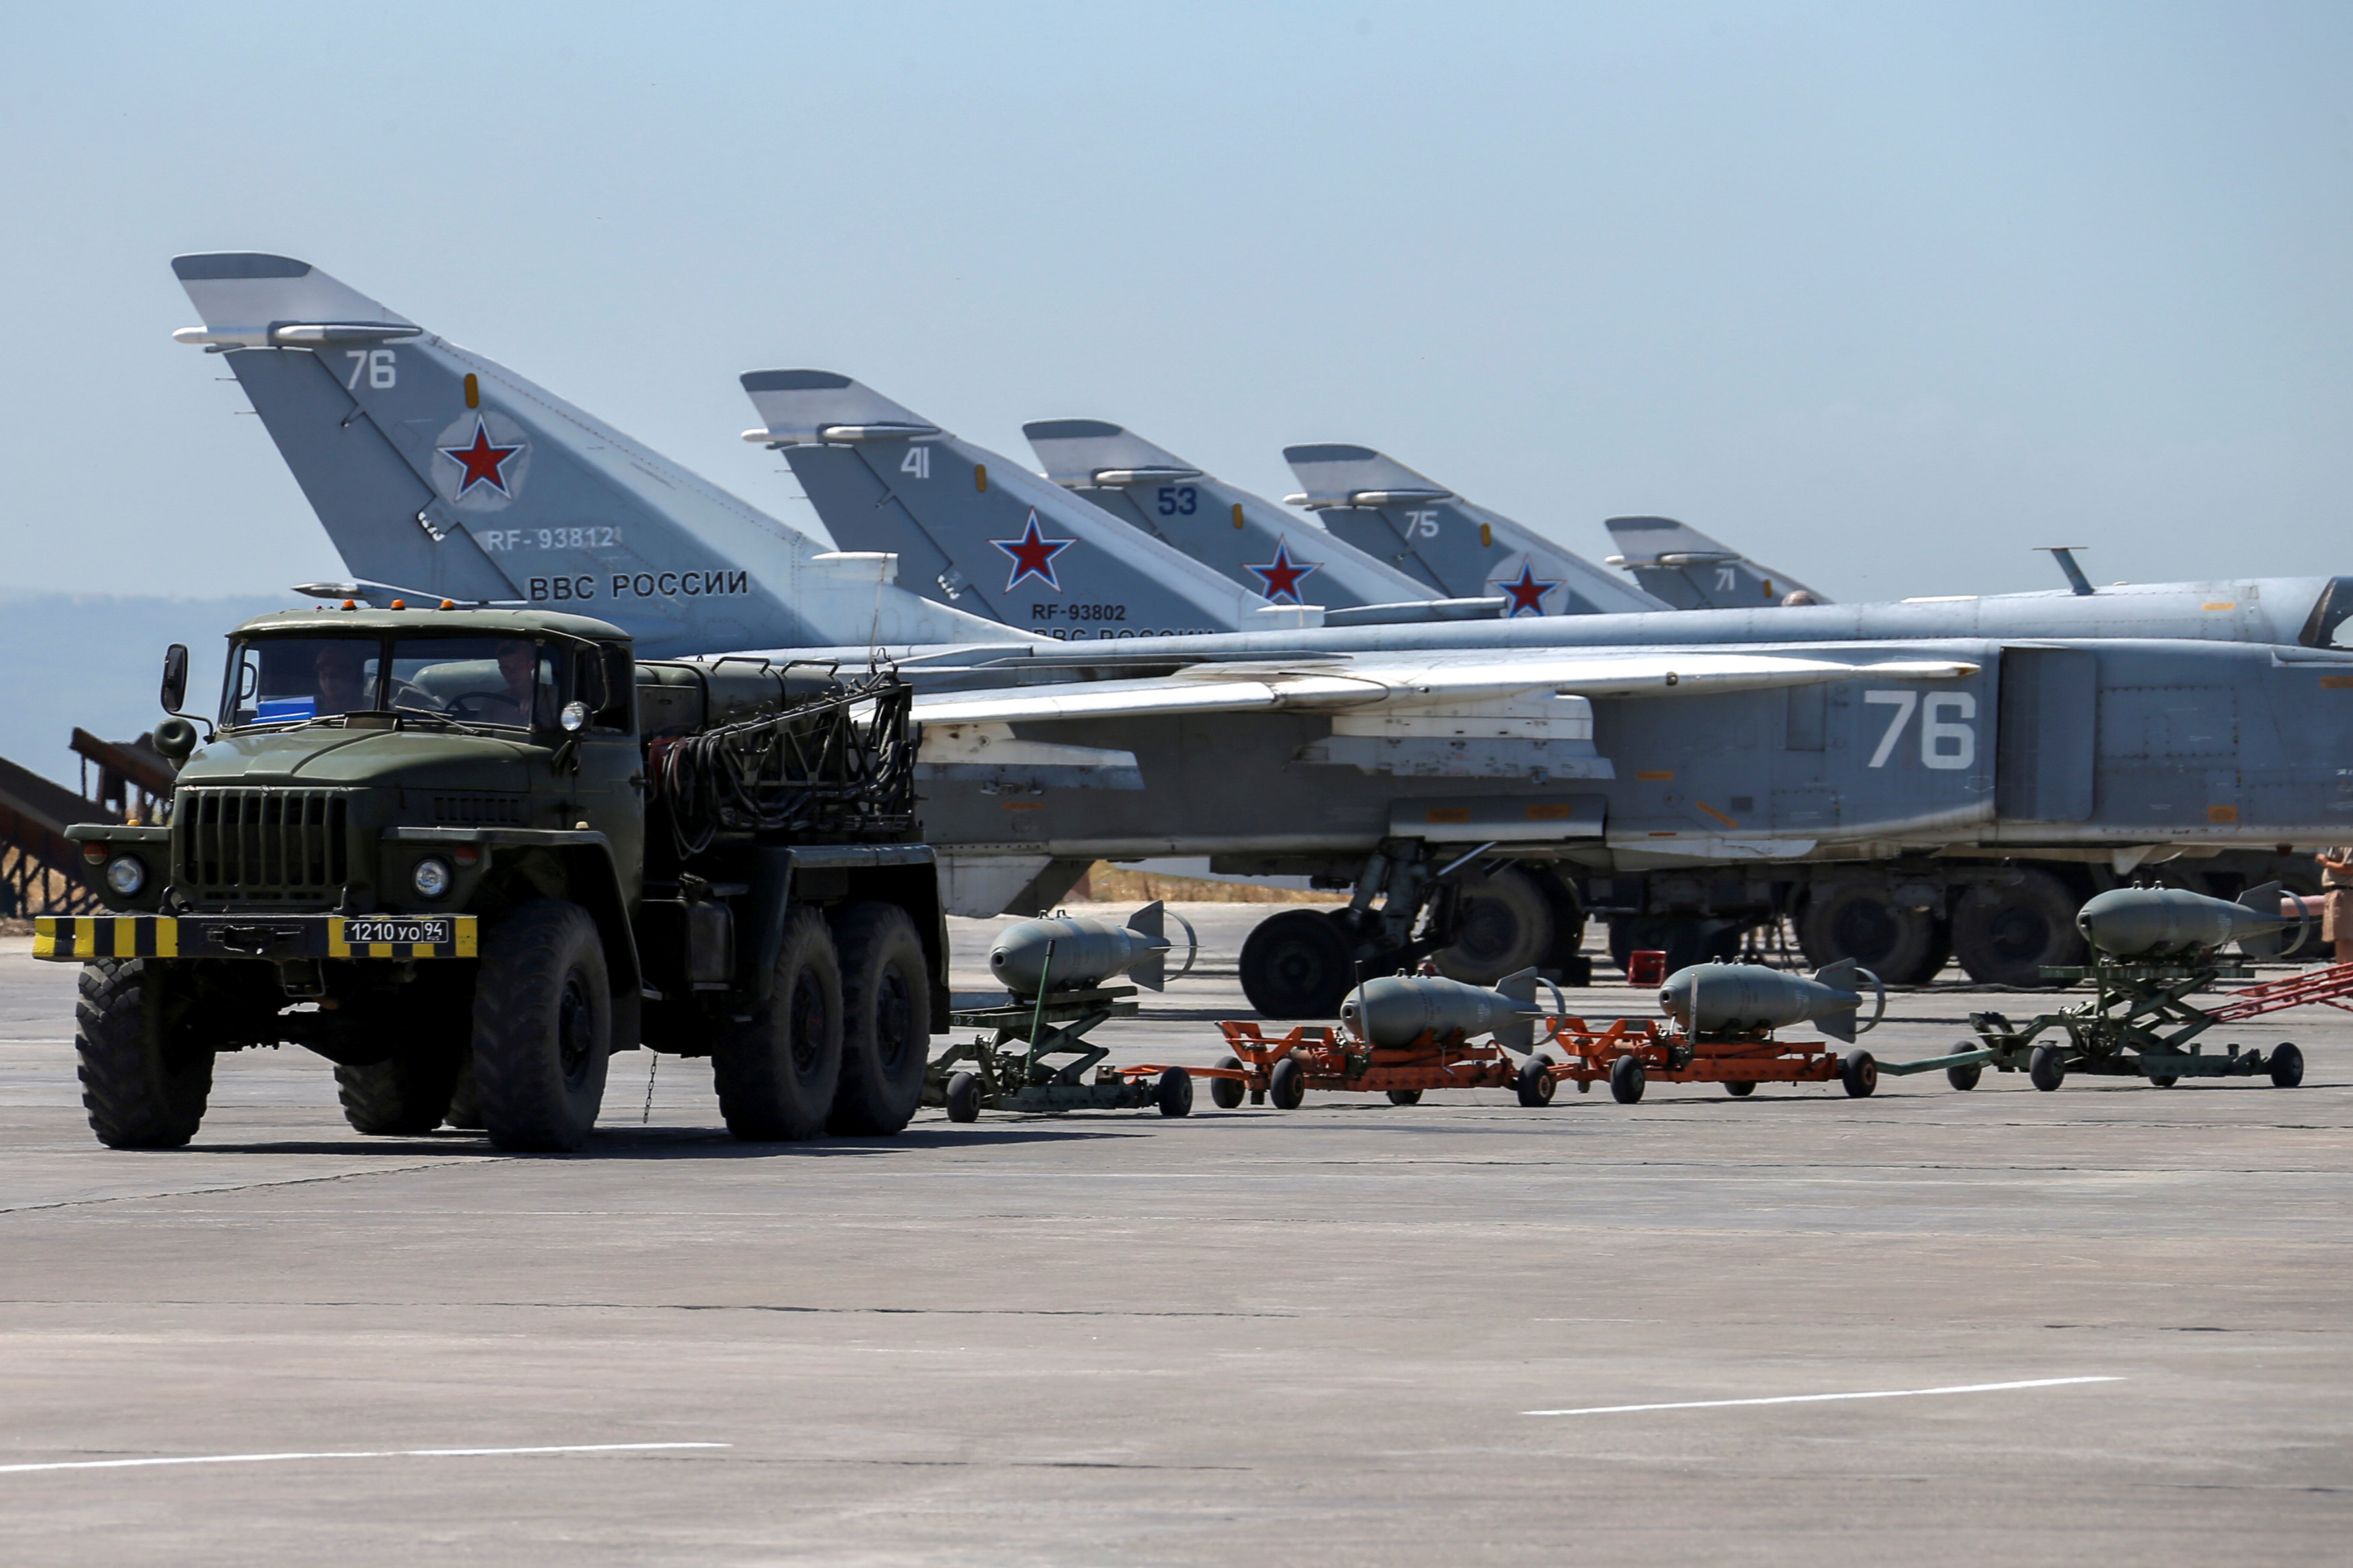 The War in Syria Has Been a Boon for the Russian Military